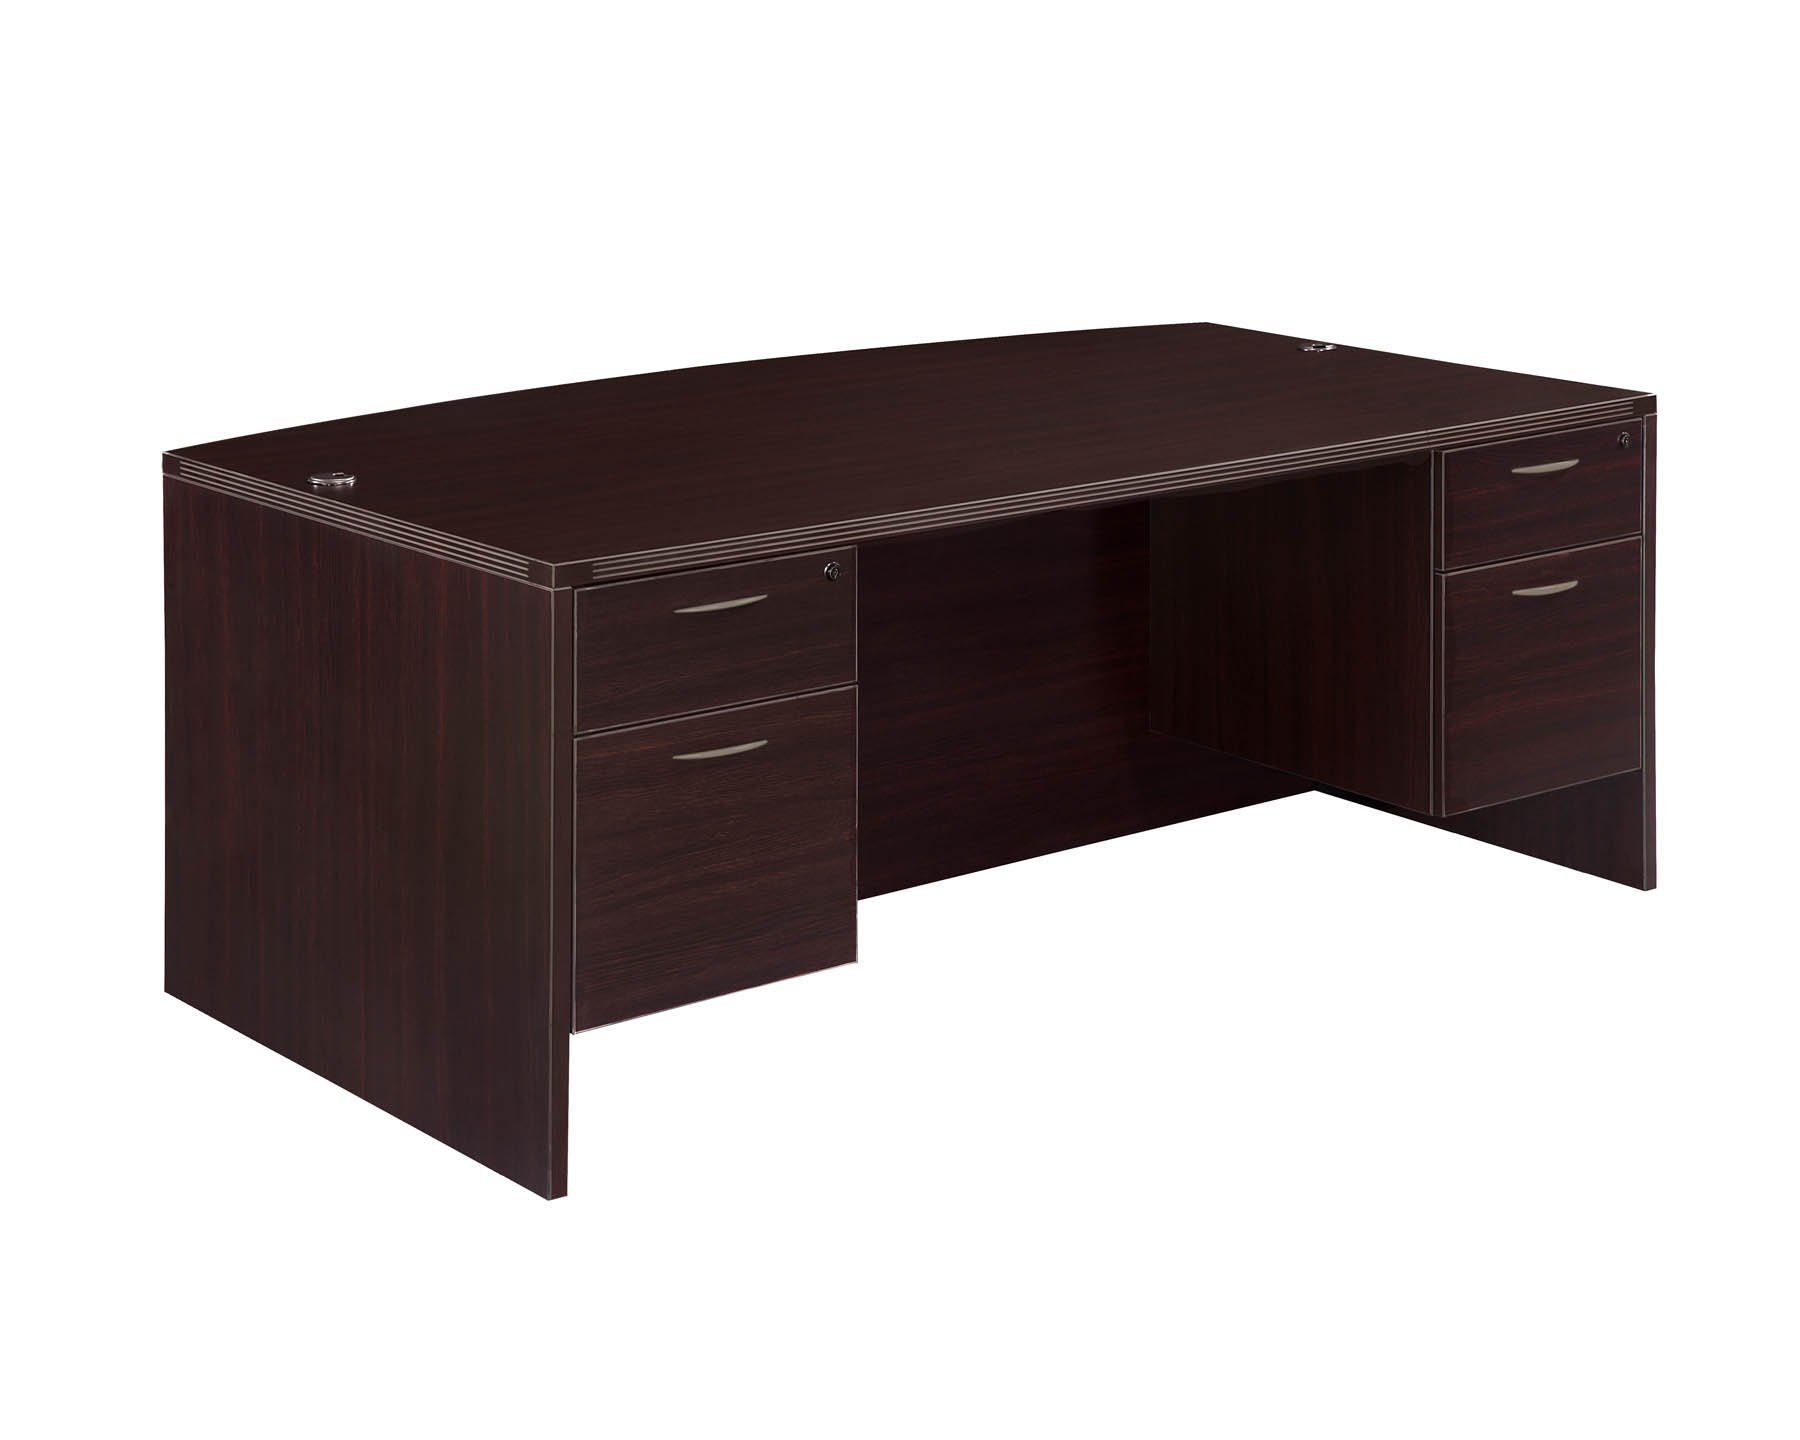 Flexsteel Fairplex  Executive Bow Front Desk with 3/4 Pedestals